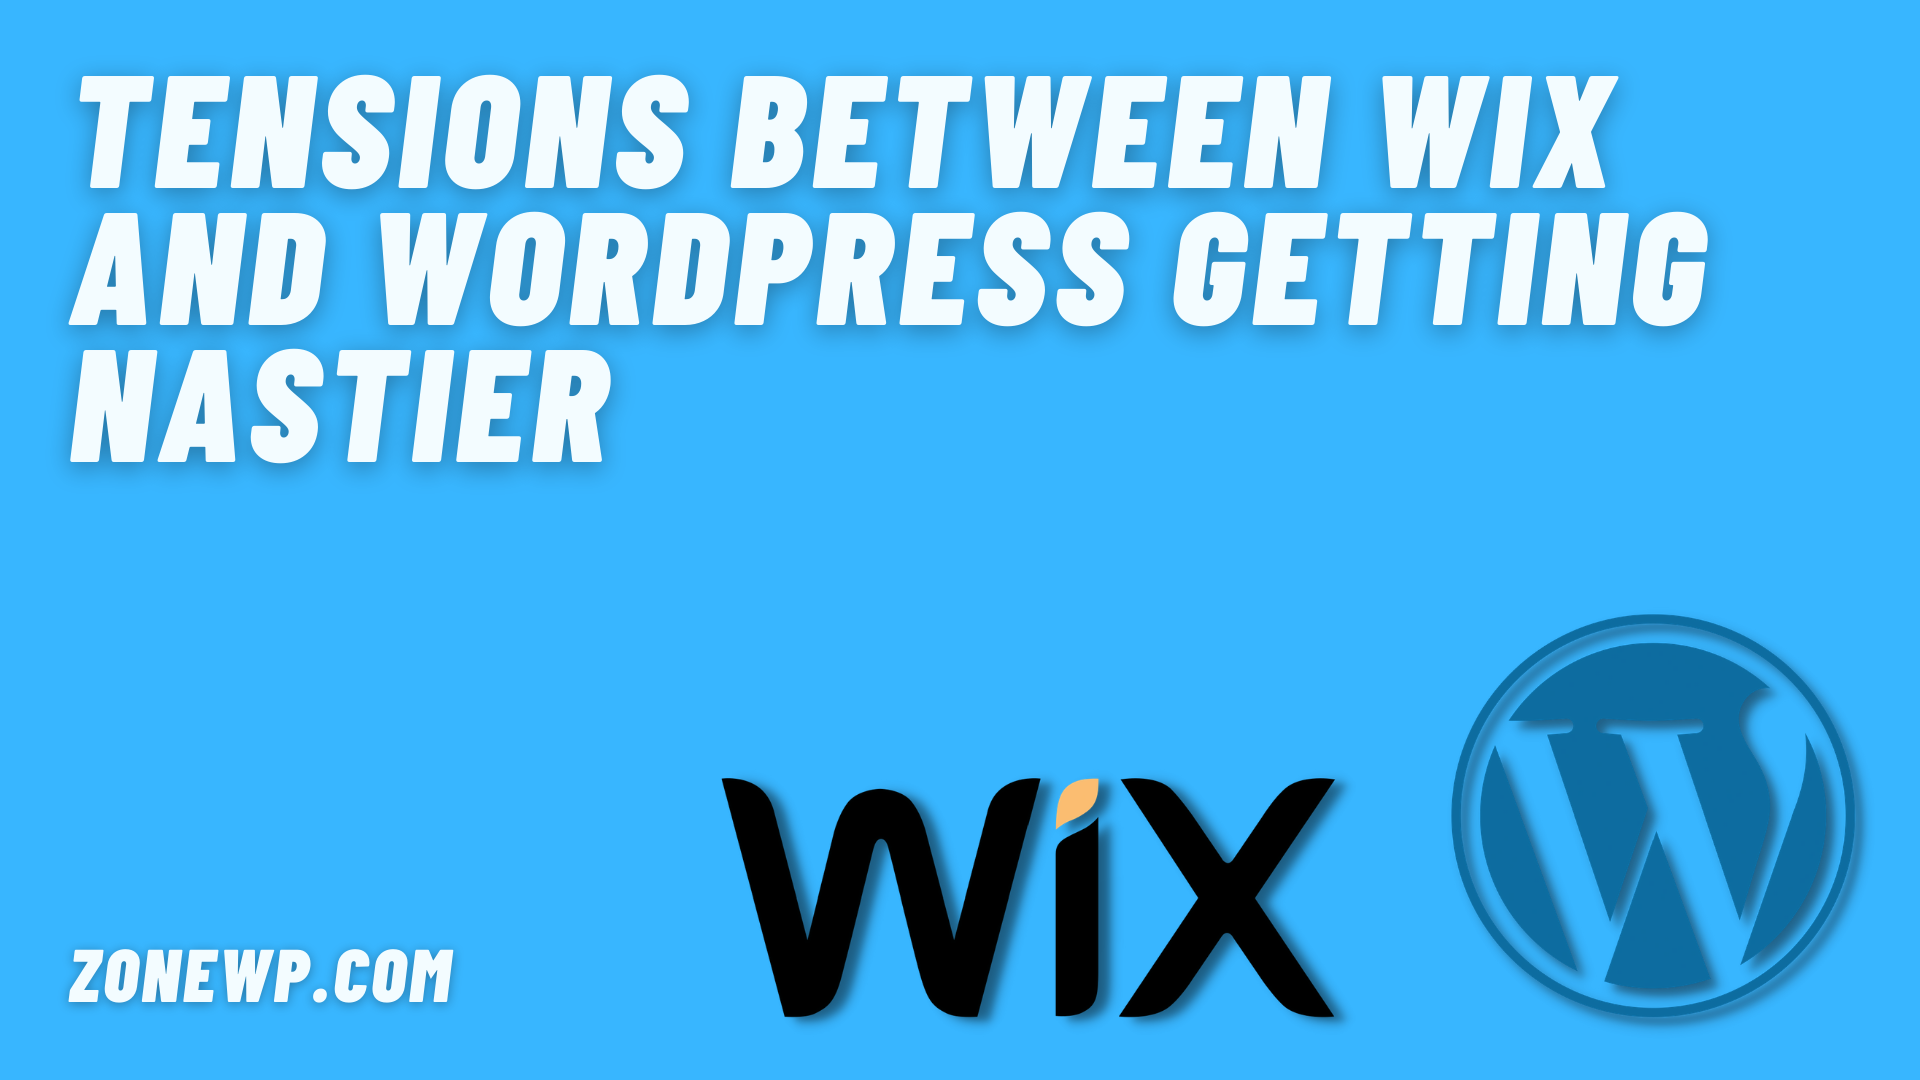 Tensions between Wix and WordPress Getting Nastier